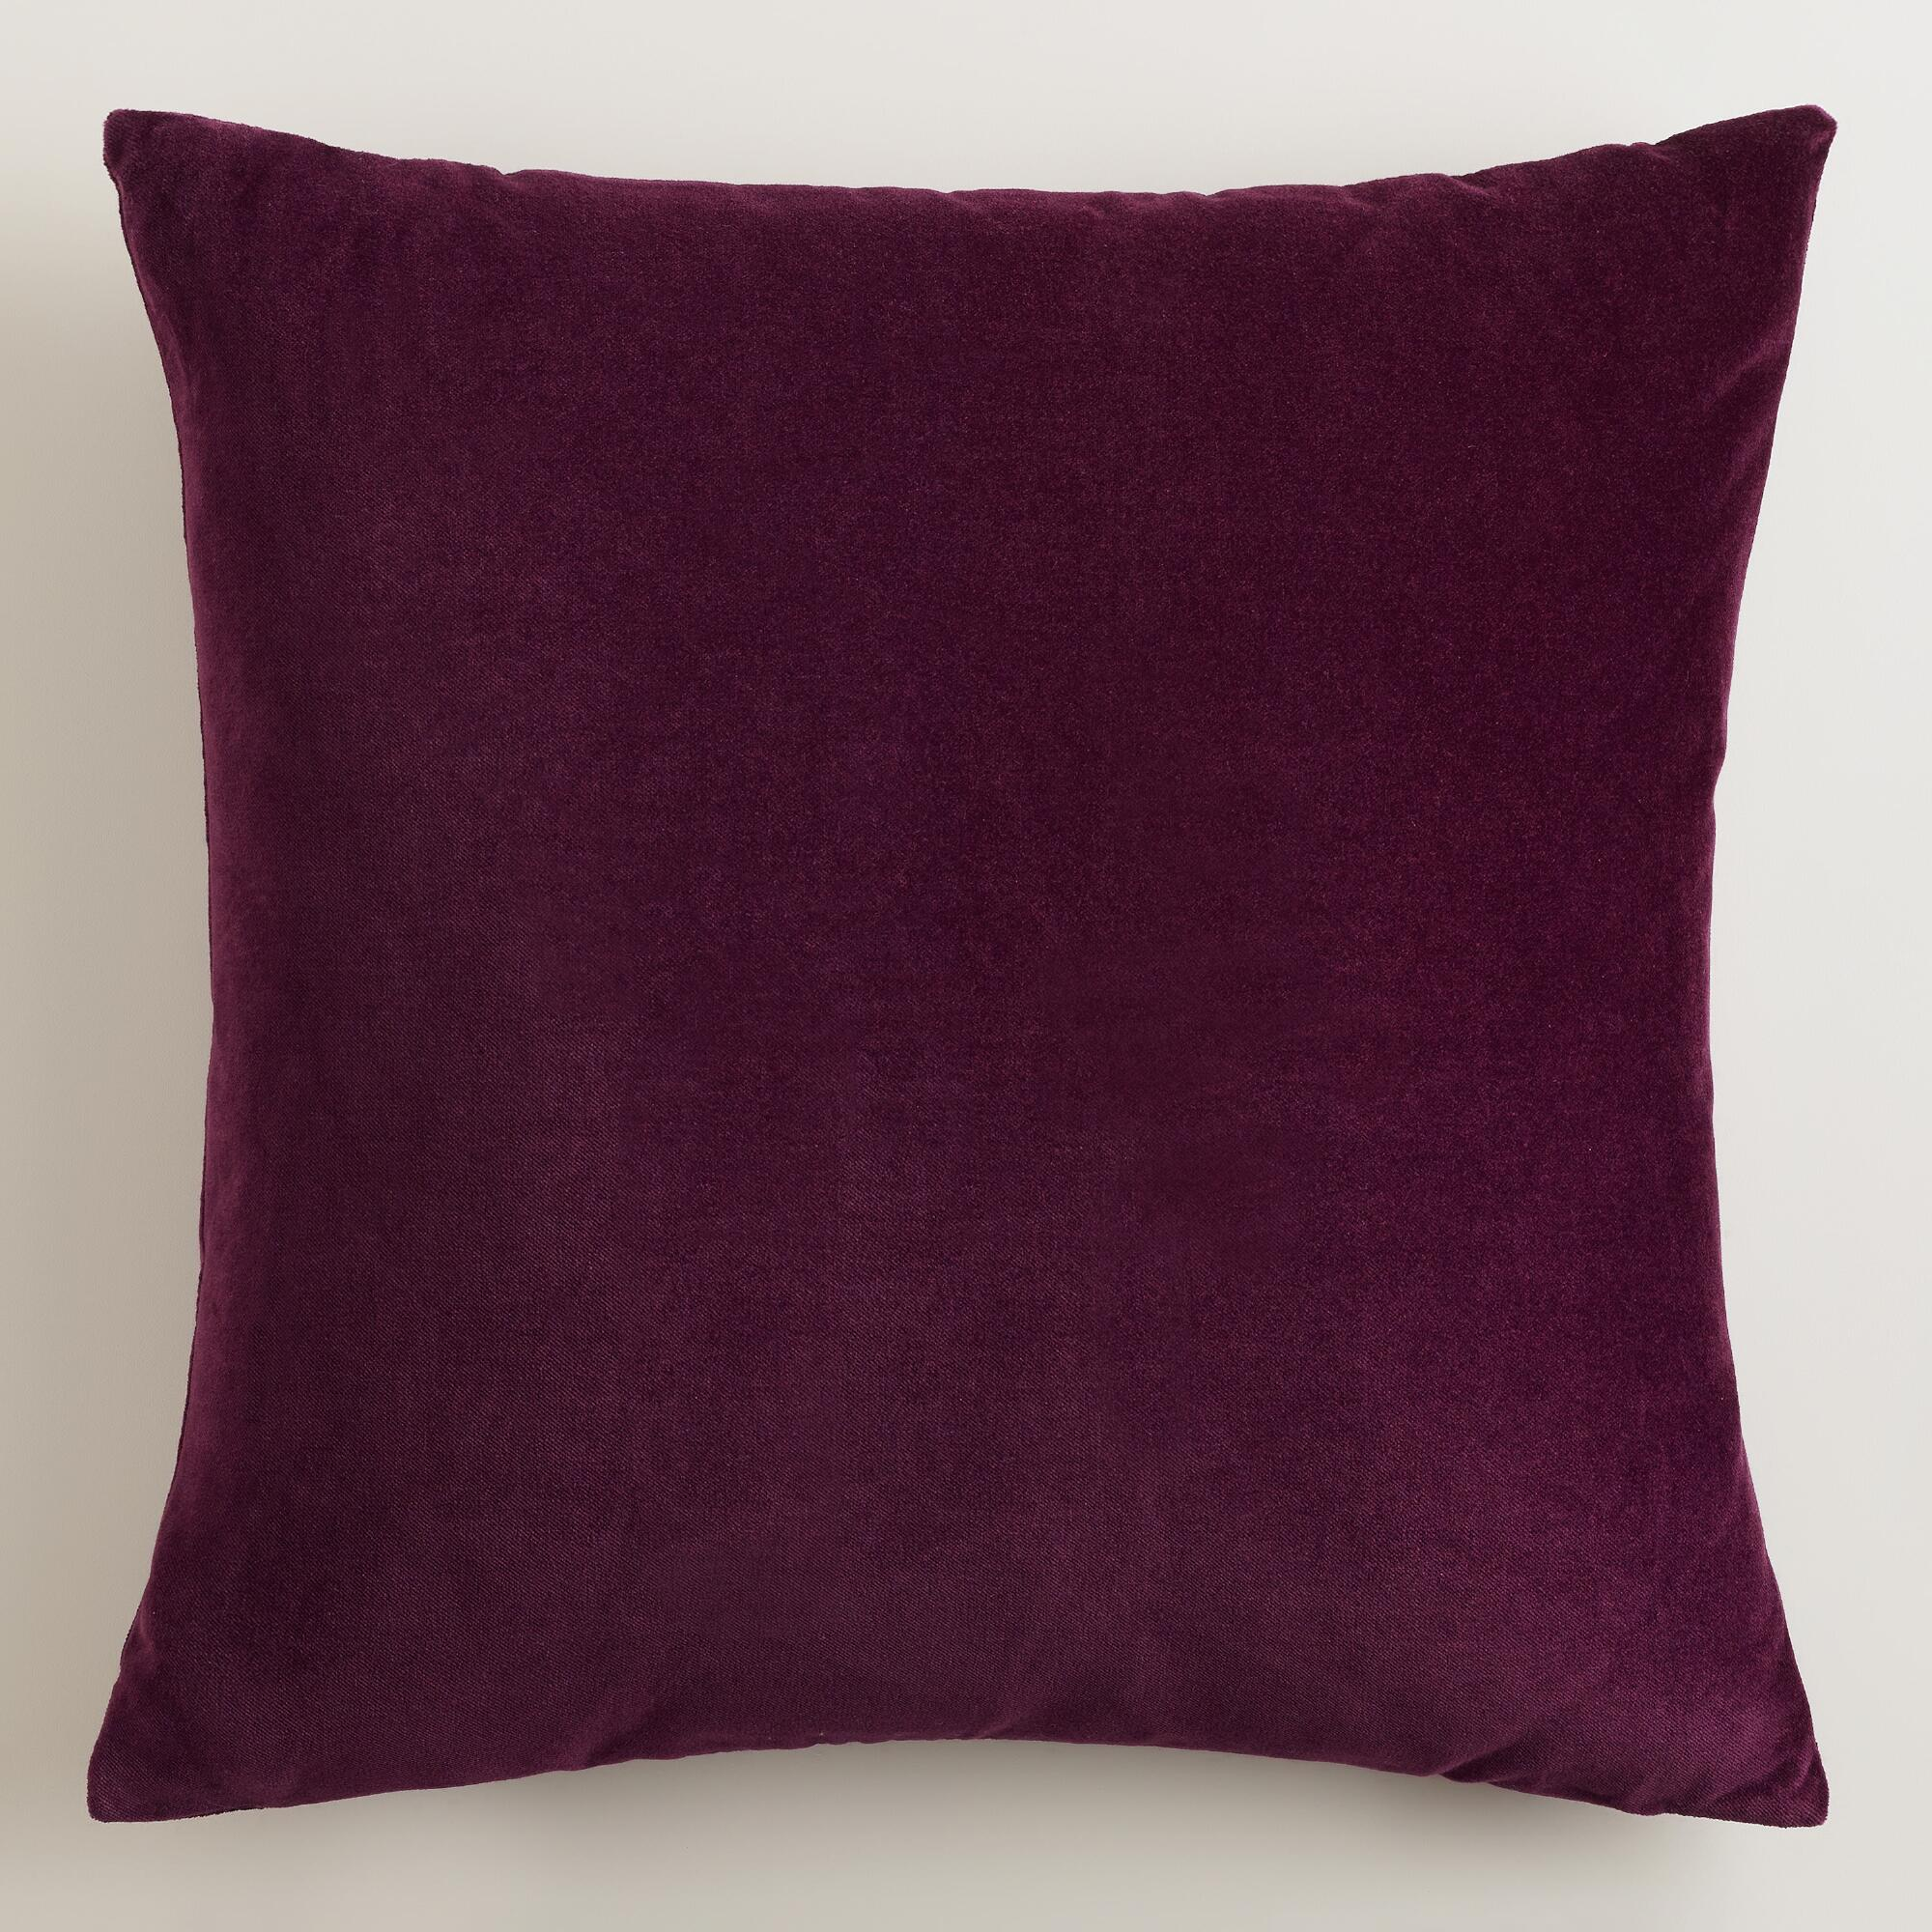 Throw Pillows Velvet : Potent Purple Velvet Throw Pillows World Market